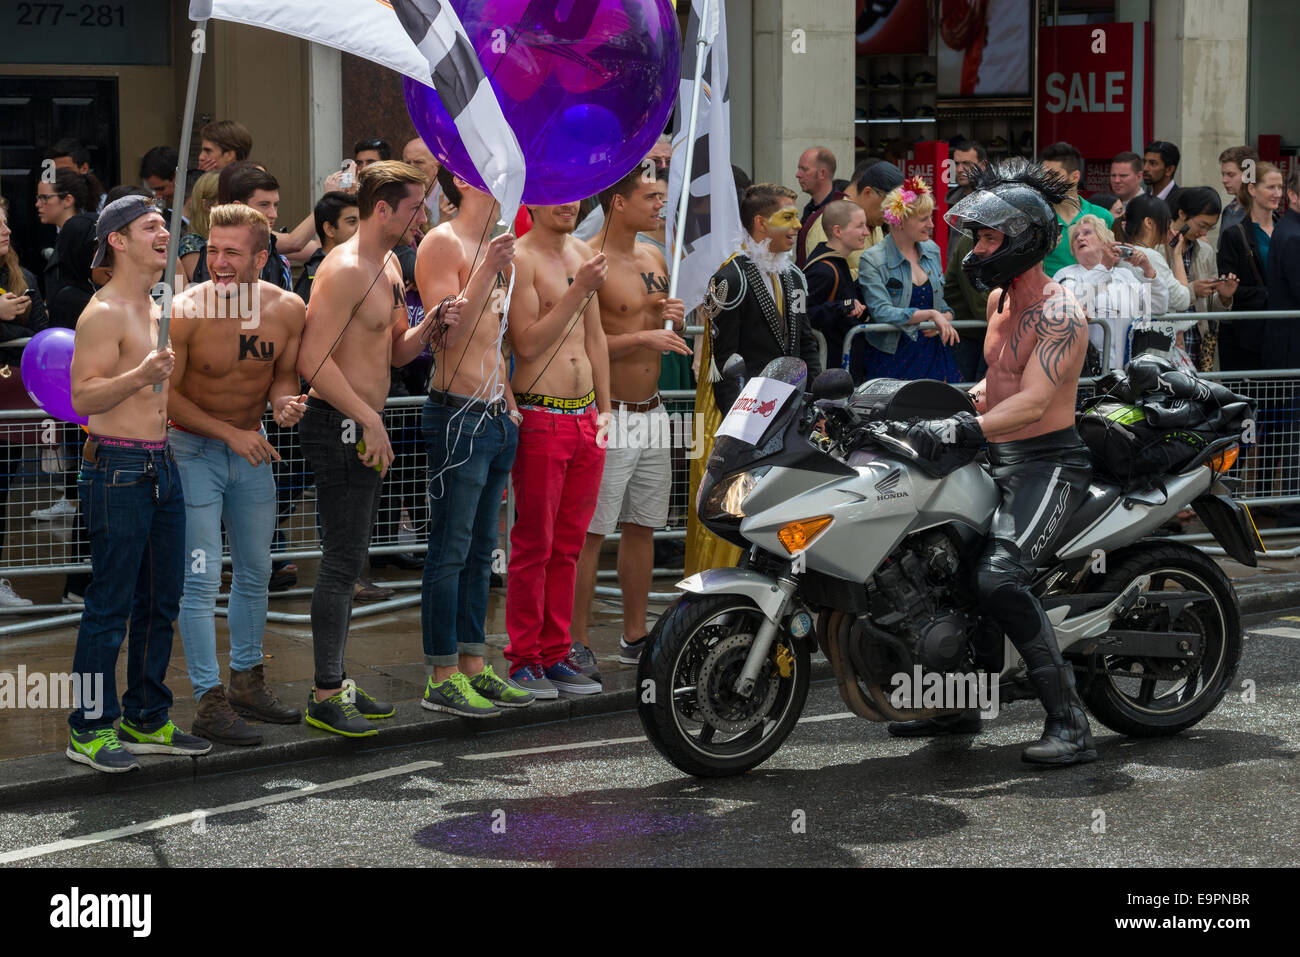 Gay Bikers Club 33